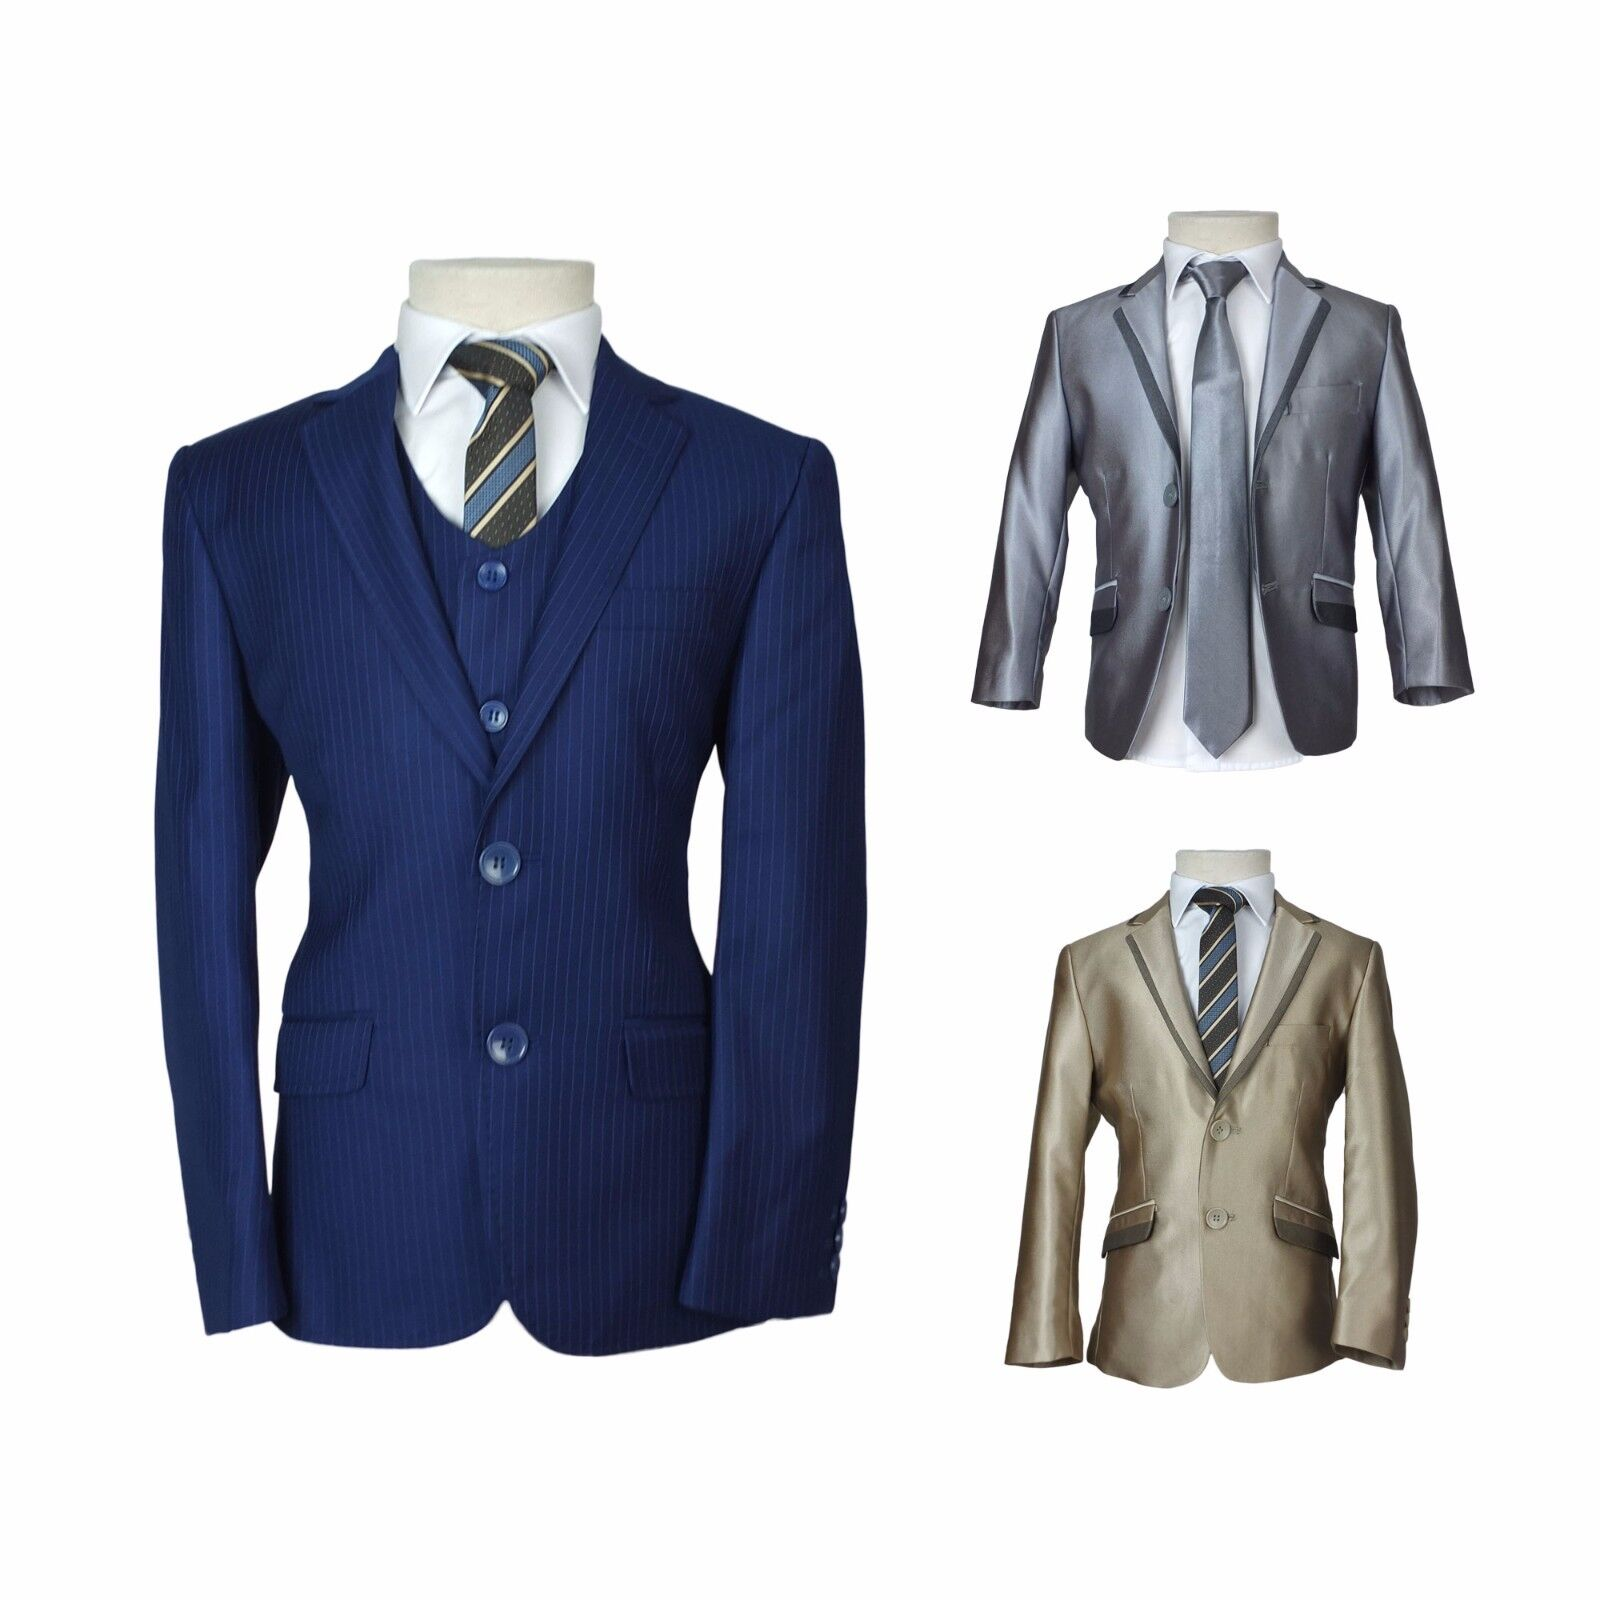 a1c4e728674f Clearance Save On Boys Suits Children Formal Wear Wedding Prom ...